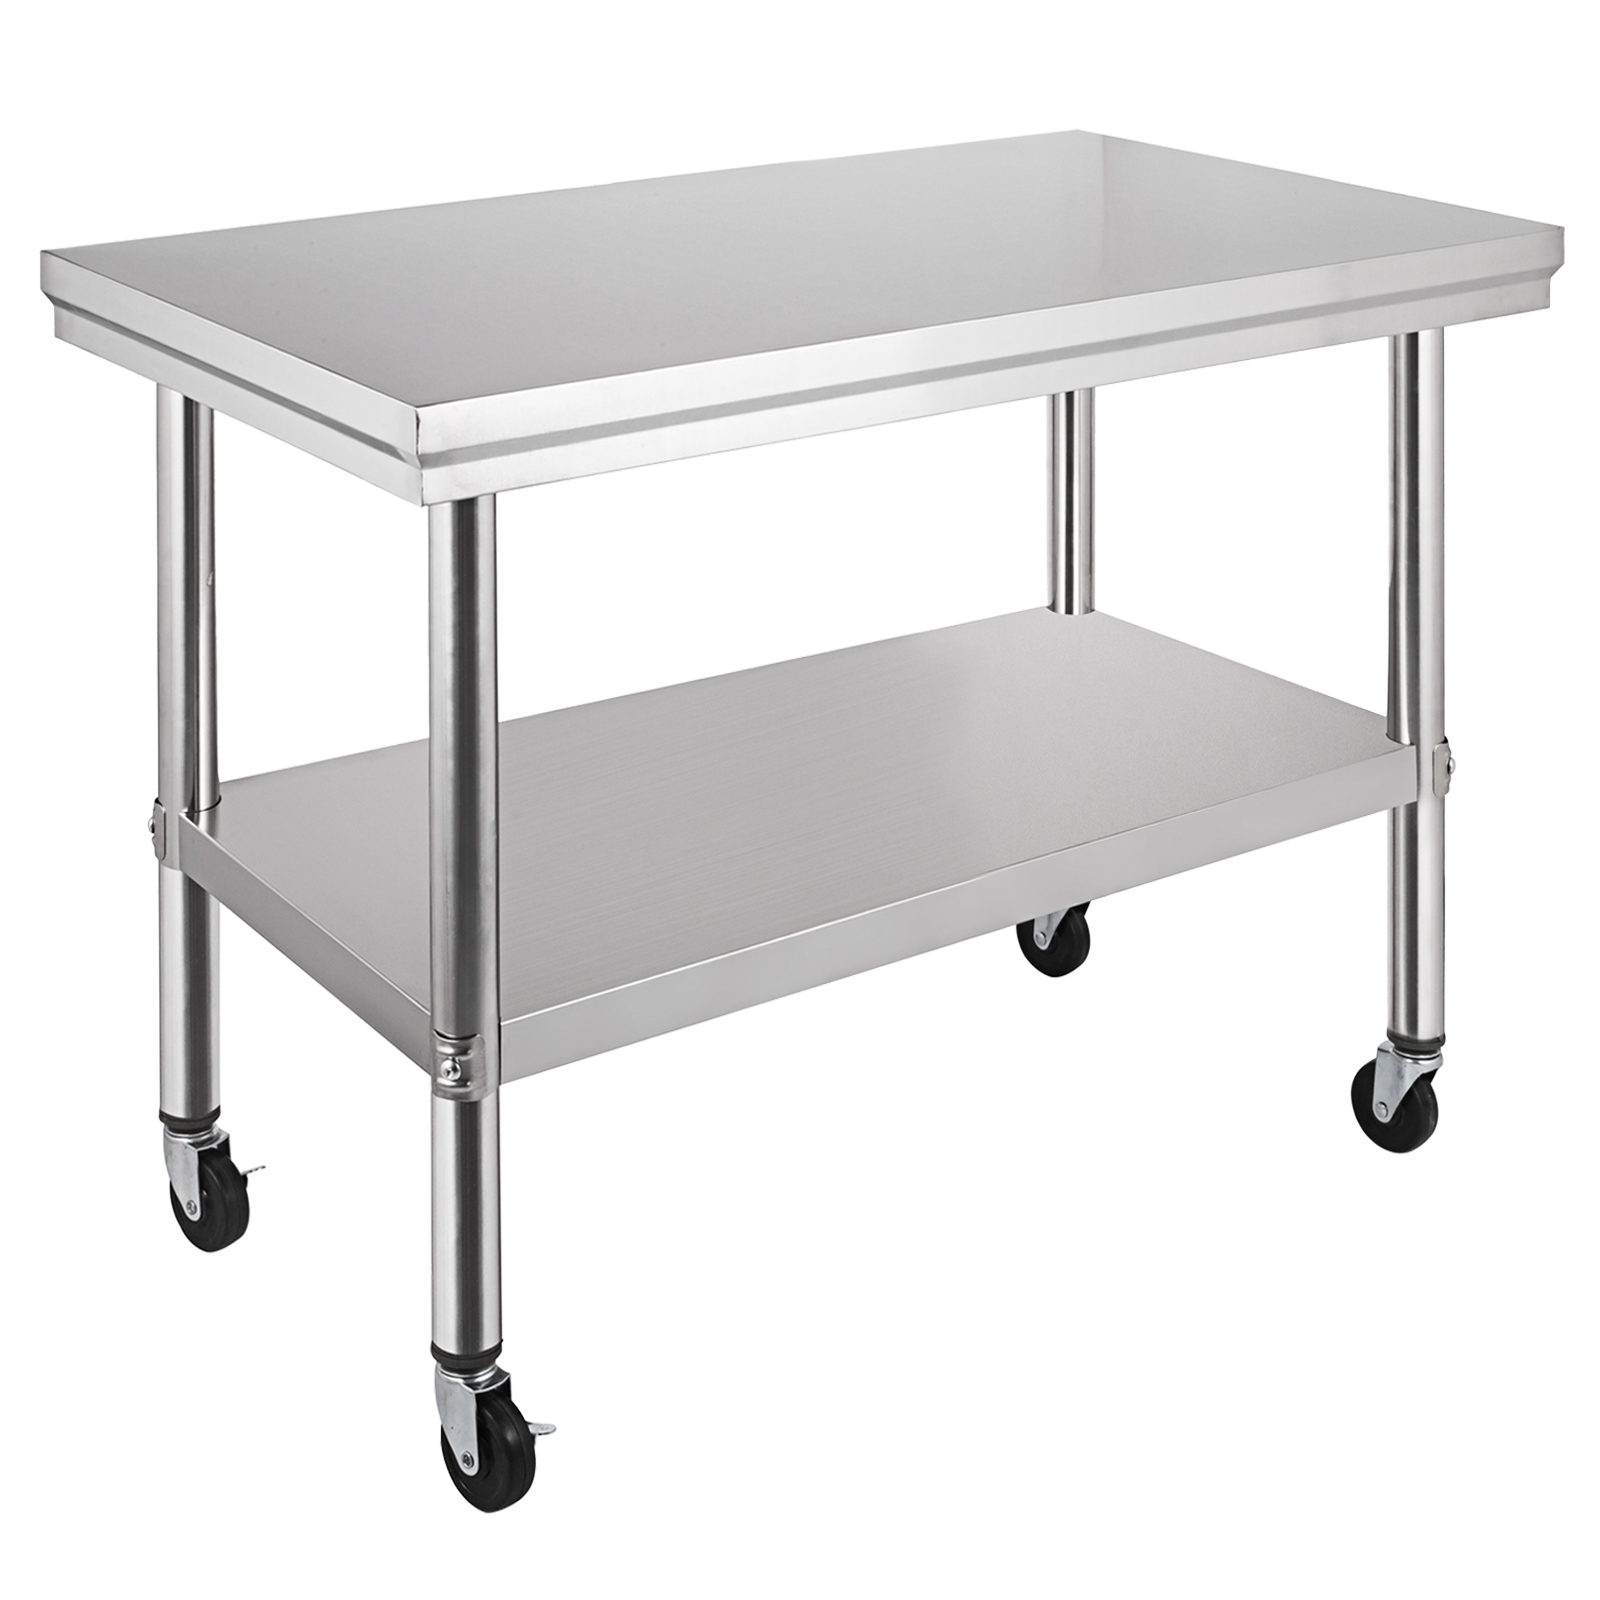 Commercial Kitchen Work Bench Food Stainless Steel Prep